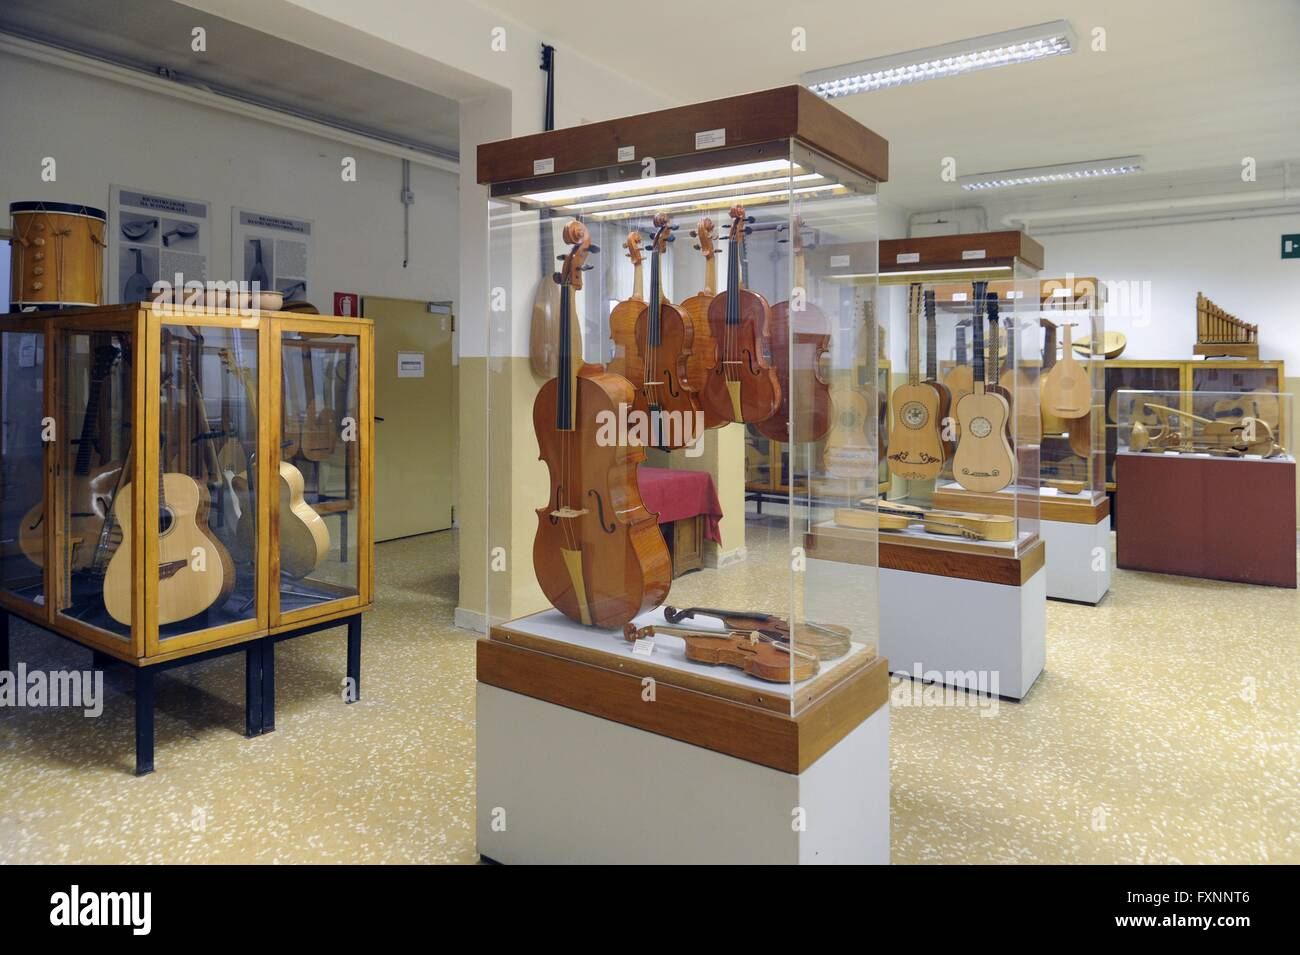 milan italy civic school of violin making the museum stock photo